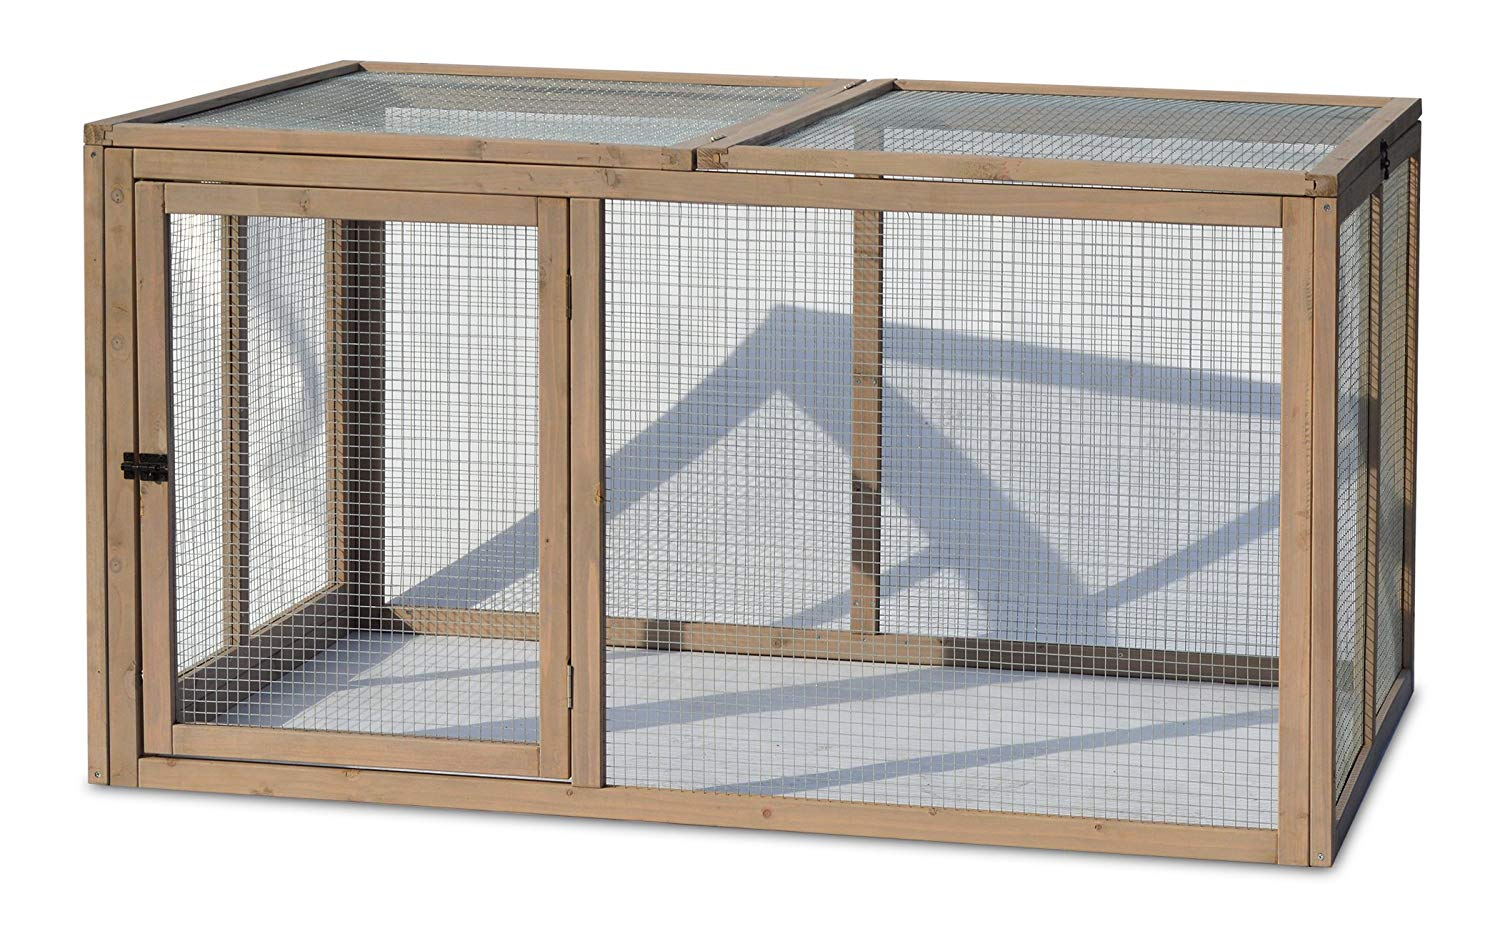 Precision Extreme Hen House Expansion Pen